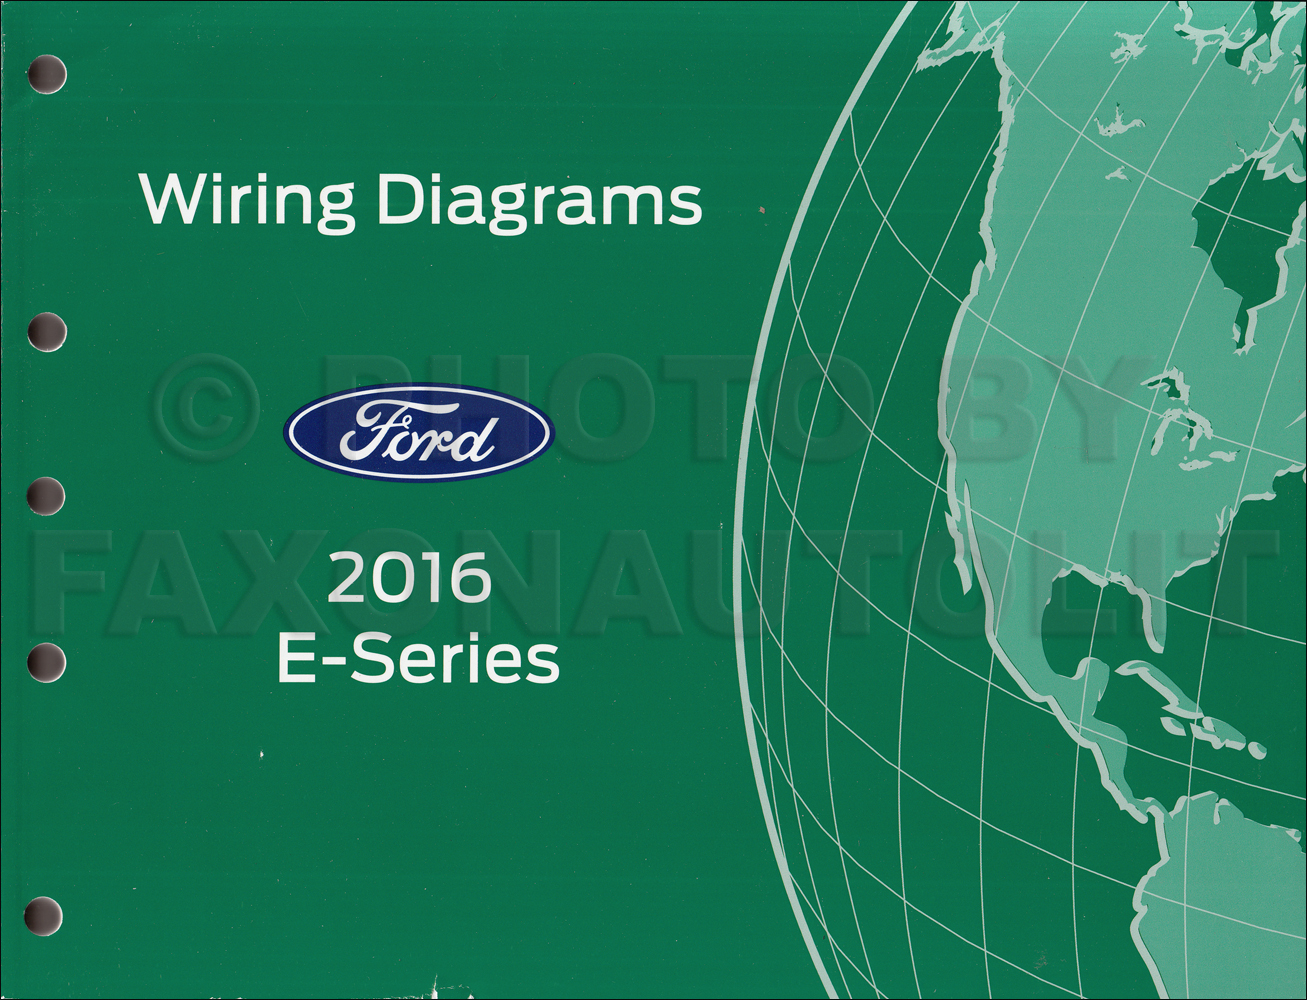 e450 wiring schematic schematics wiring diagrams u2022 rh hokispokisrecords com Ford Motorhome Wiring Diagram 2000 Ford F350 Wiring Diagram